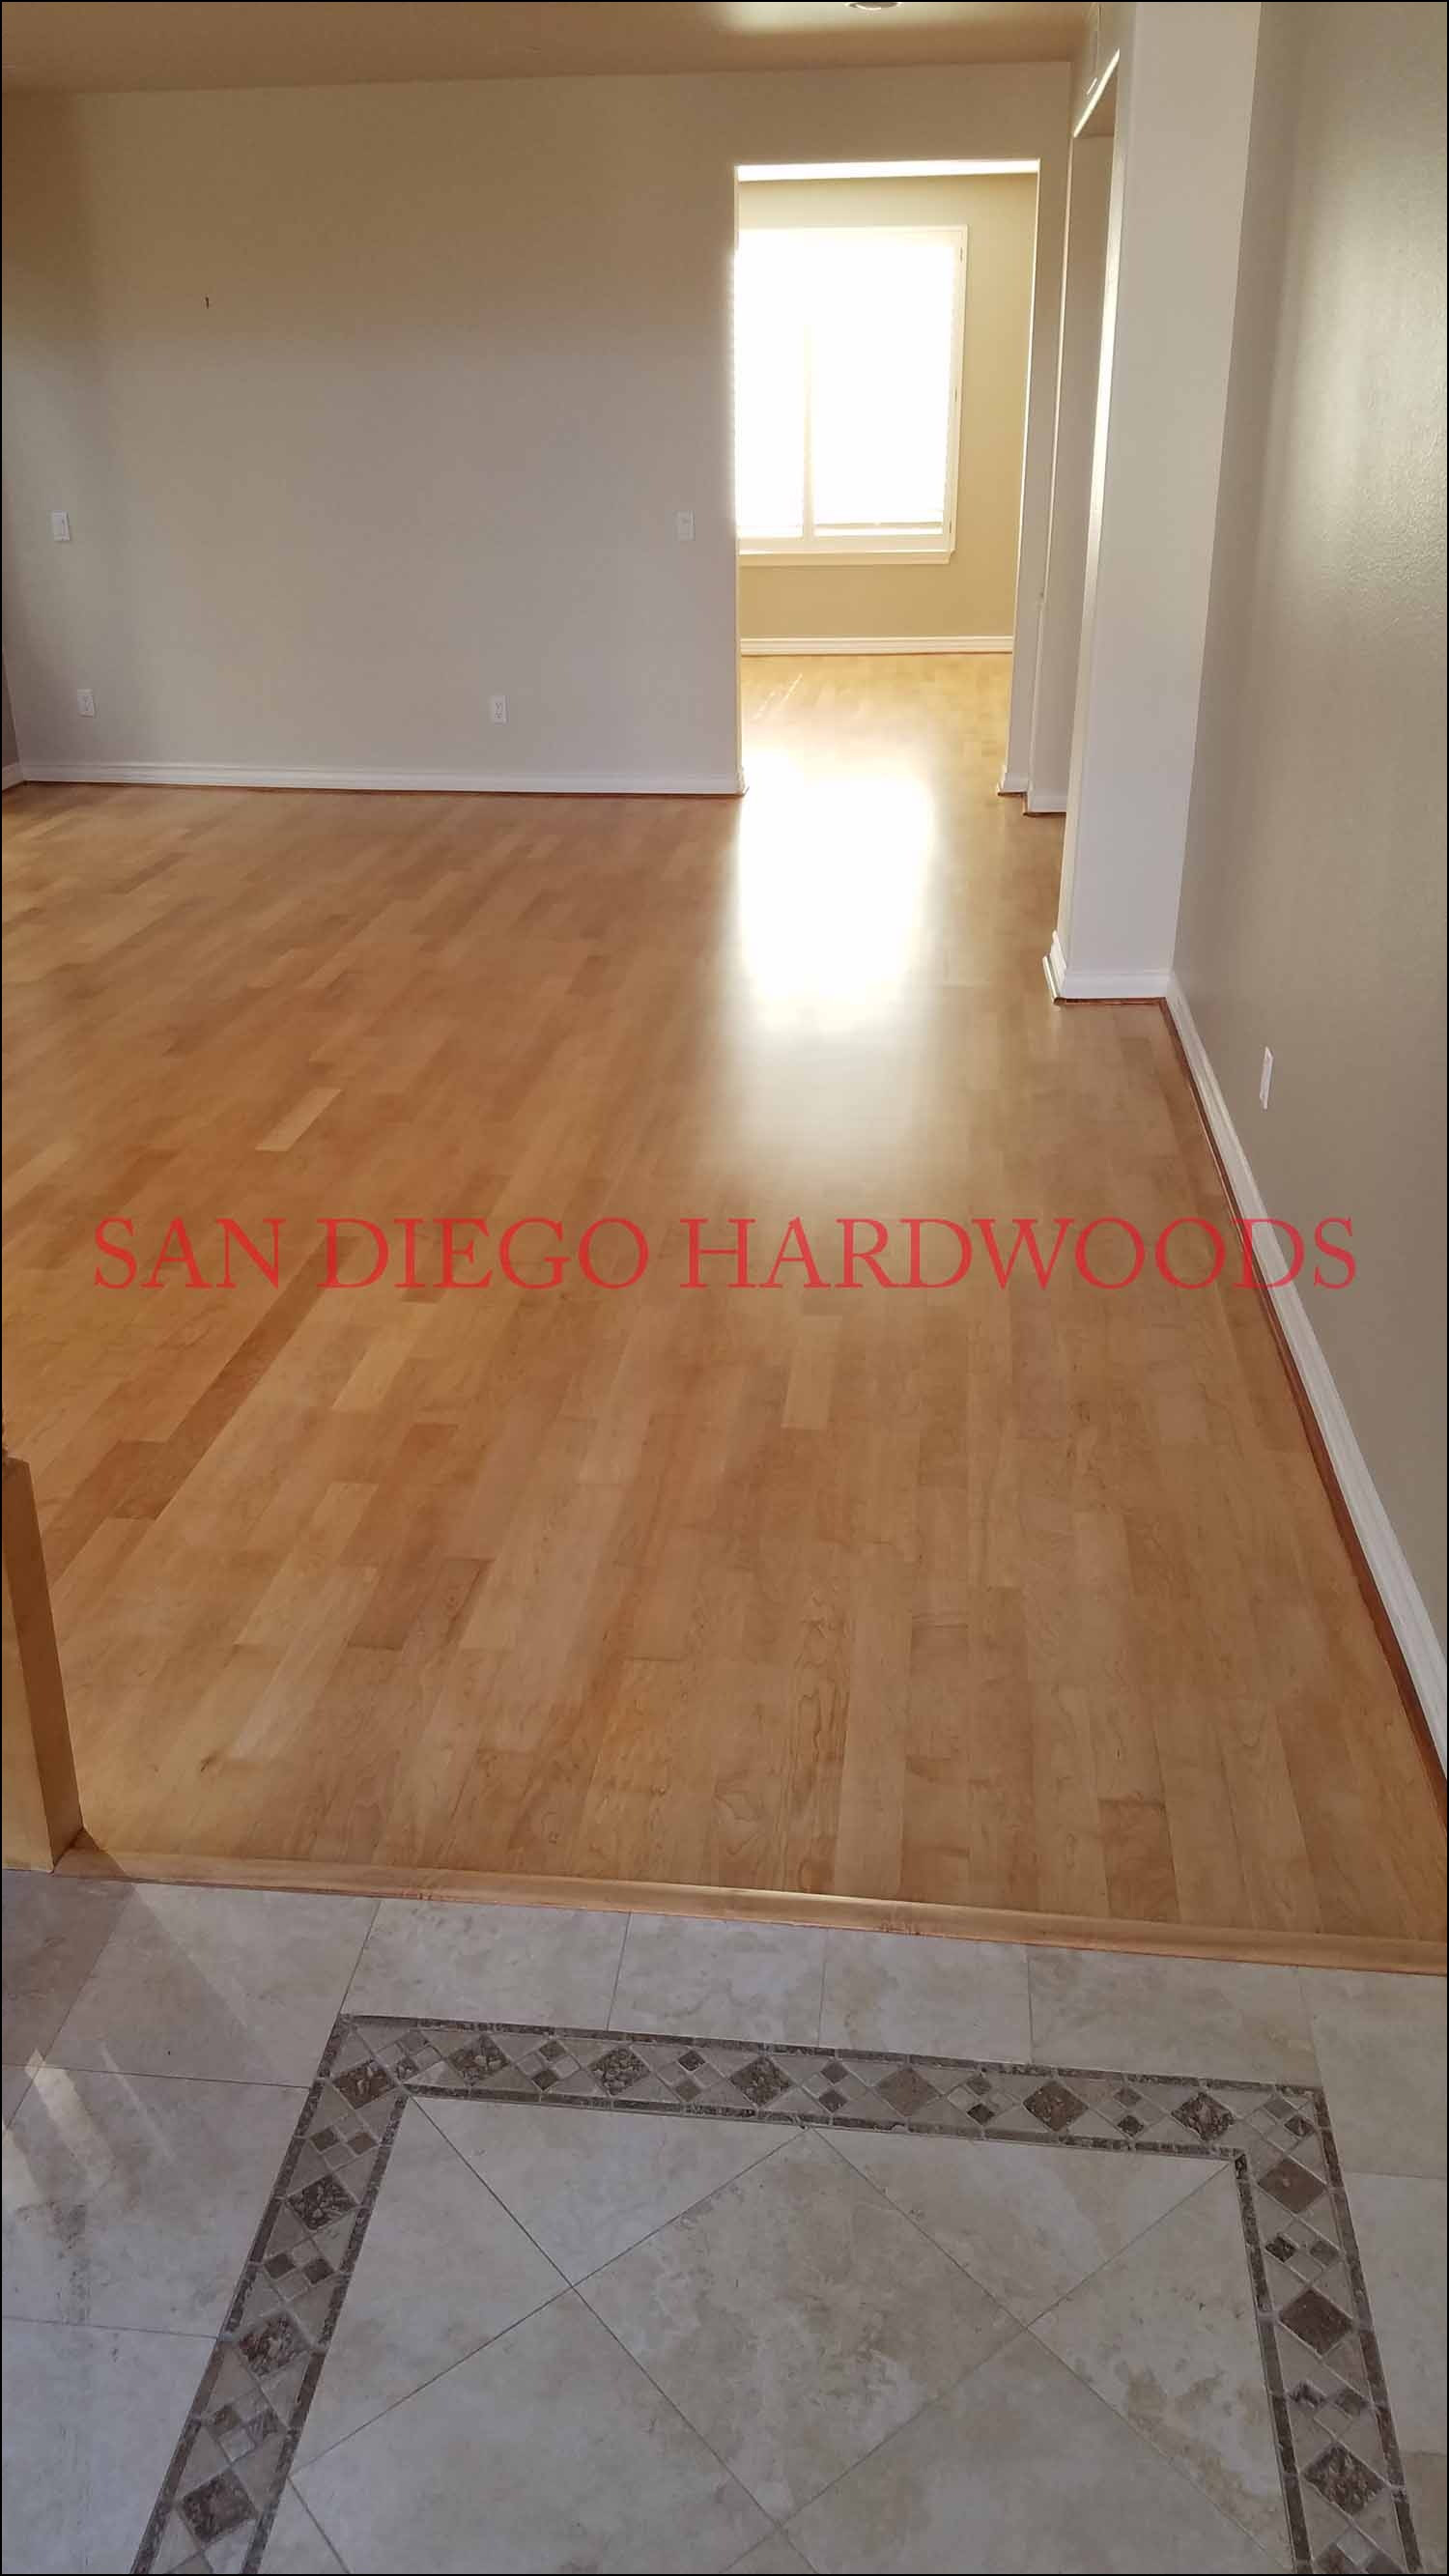 Hardwood Flooring Depot Reviews Of Hardwood Flooring Suppliers France Flooring Ideas within Hardwood Flooring Installation San Diego Images San Diego Hardwood Floor Restoration 858 699 0072 Licensed Of